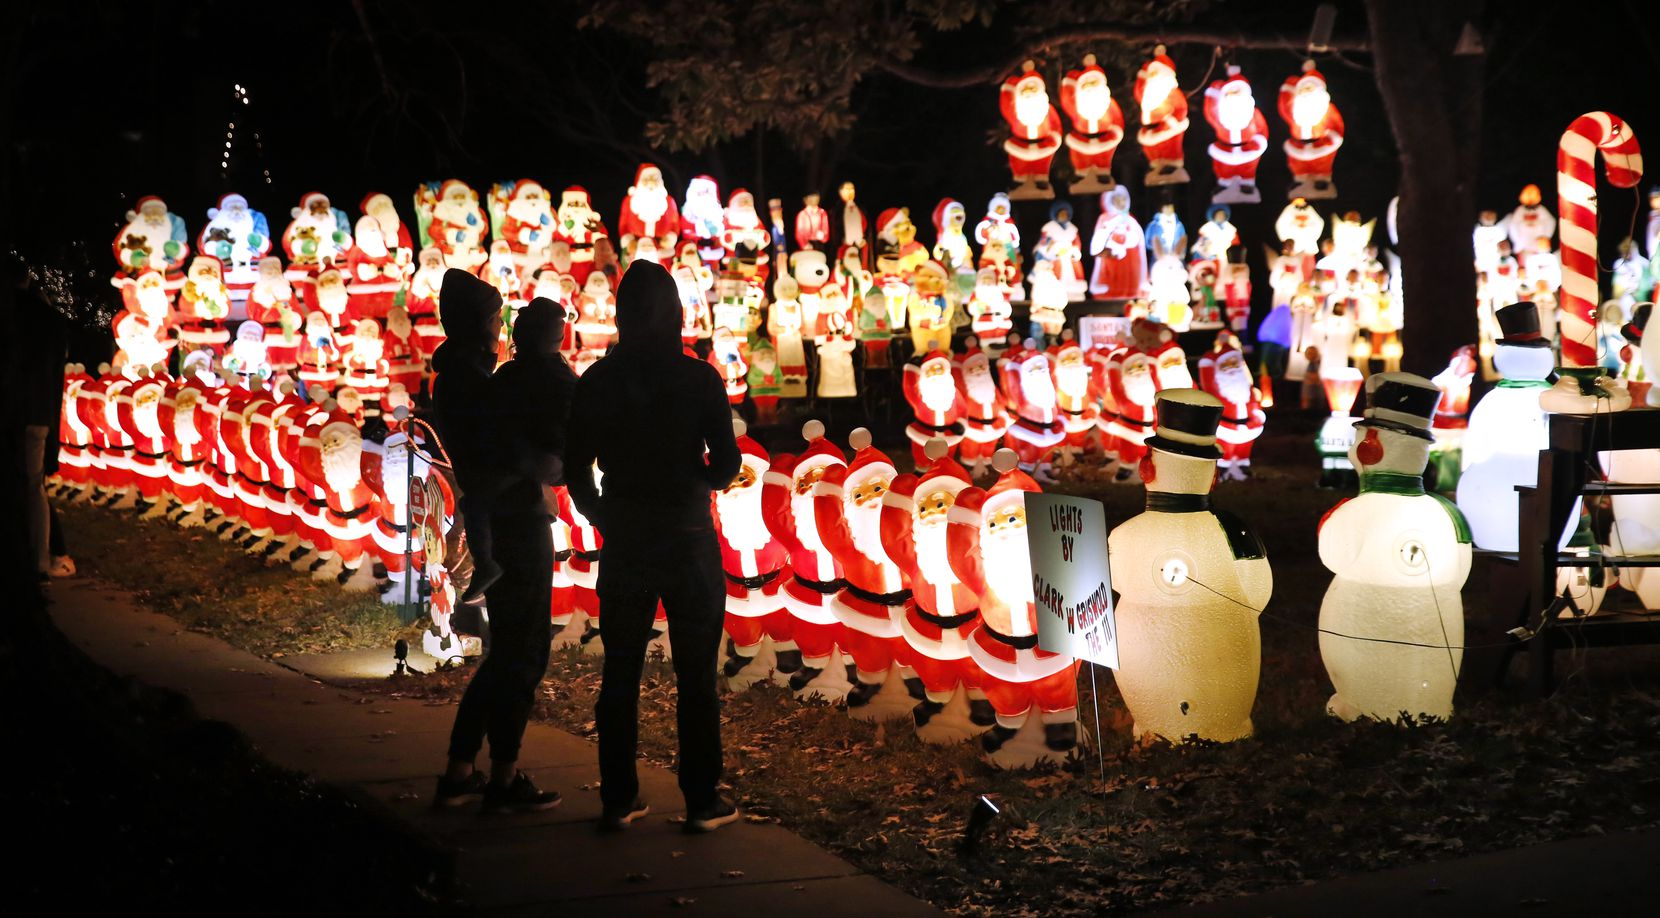 Visitors view the holiday scene in Wayne Smith's University Park yard.